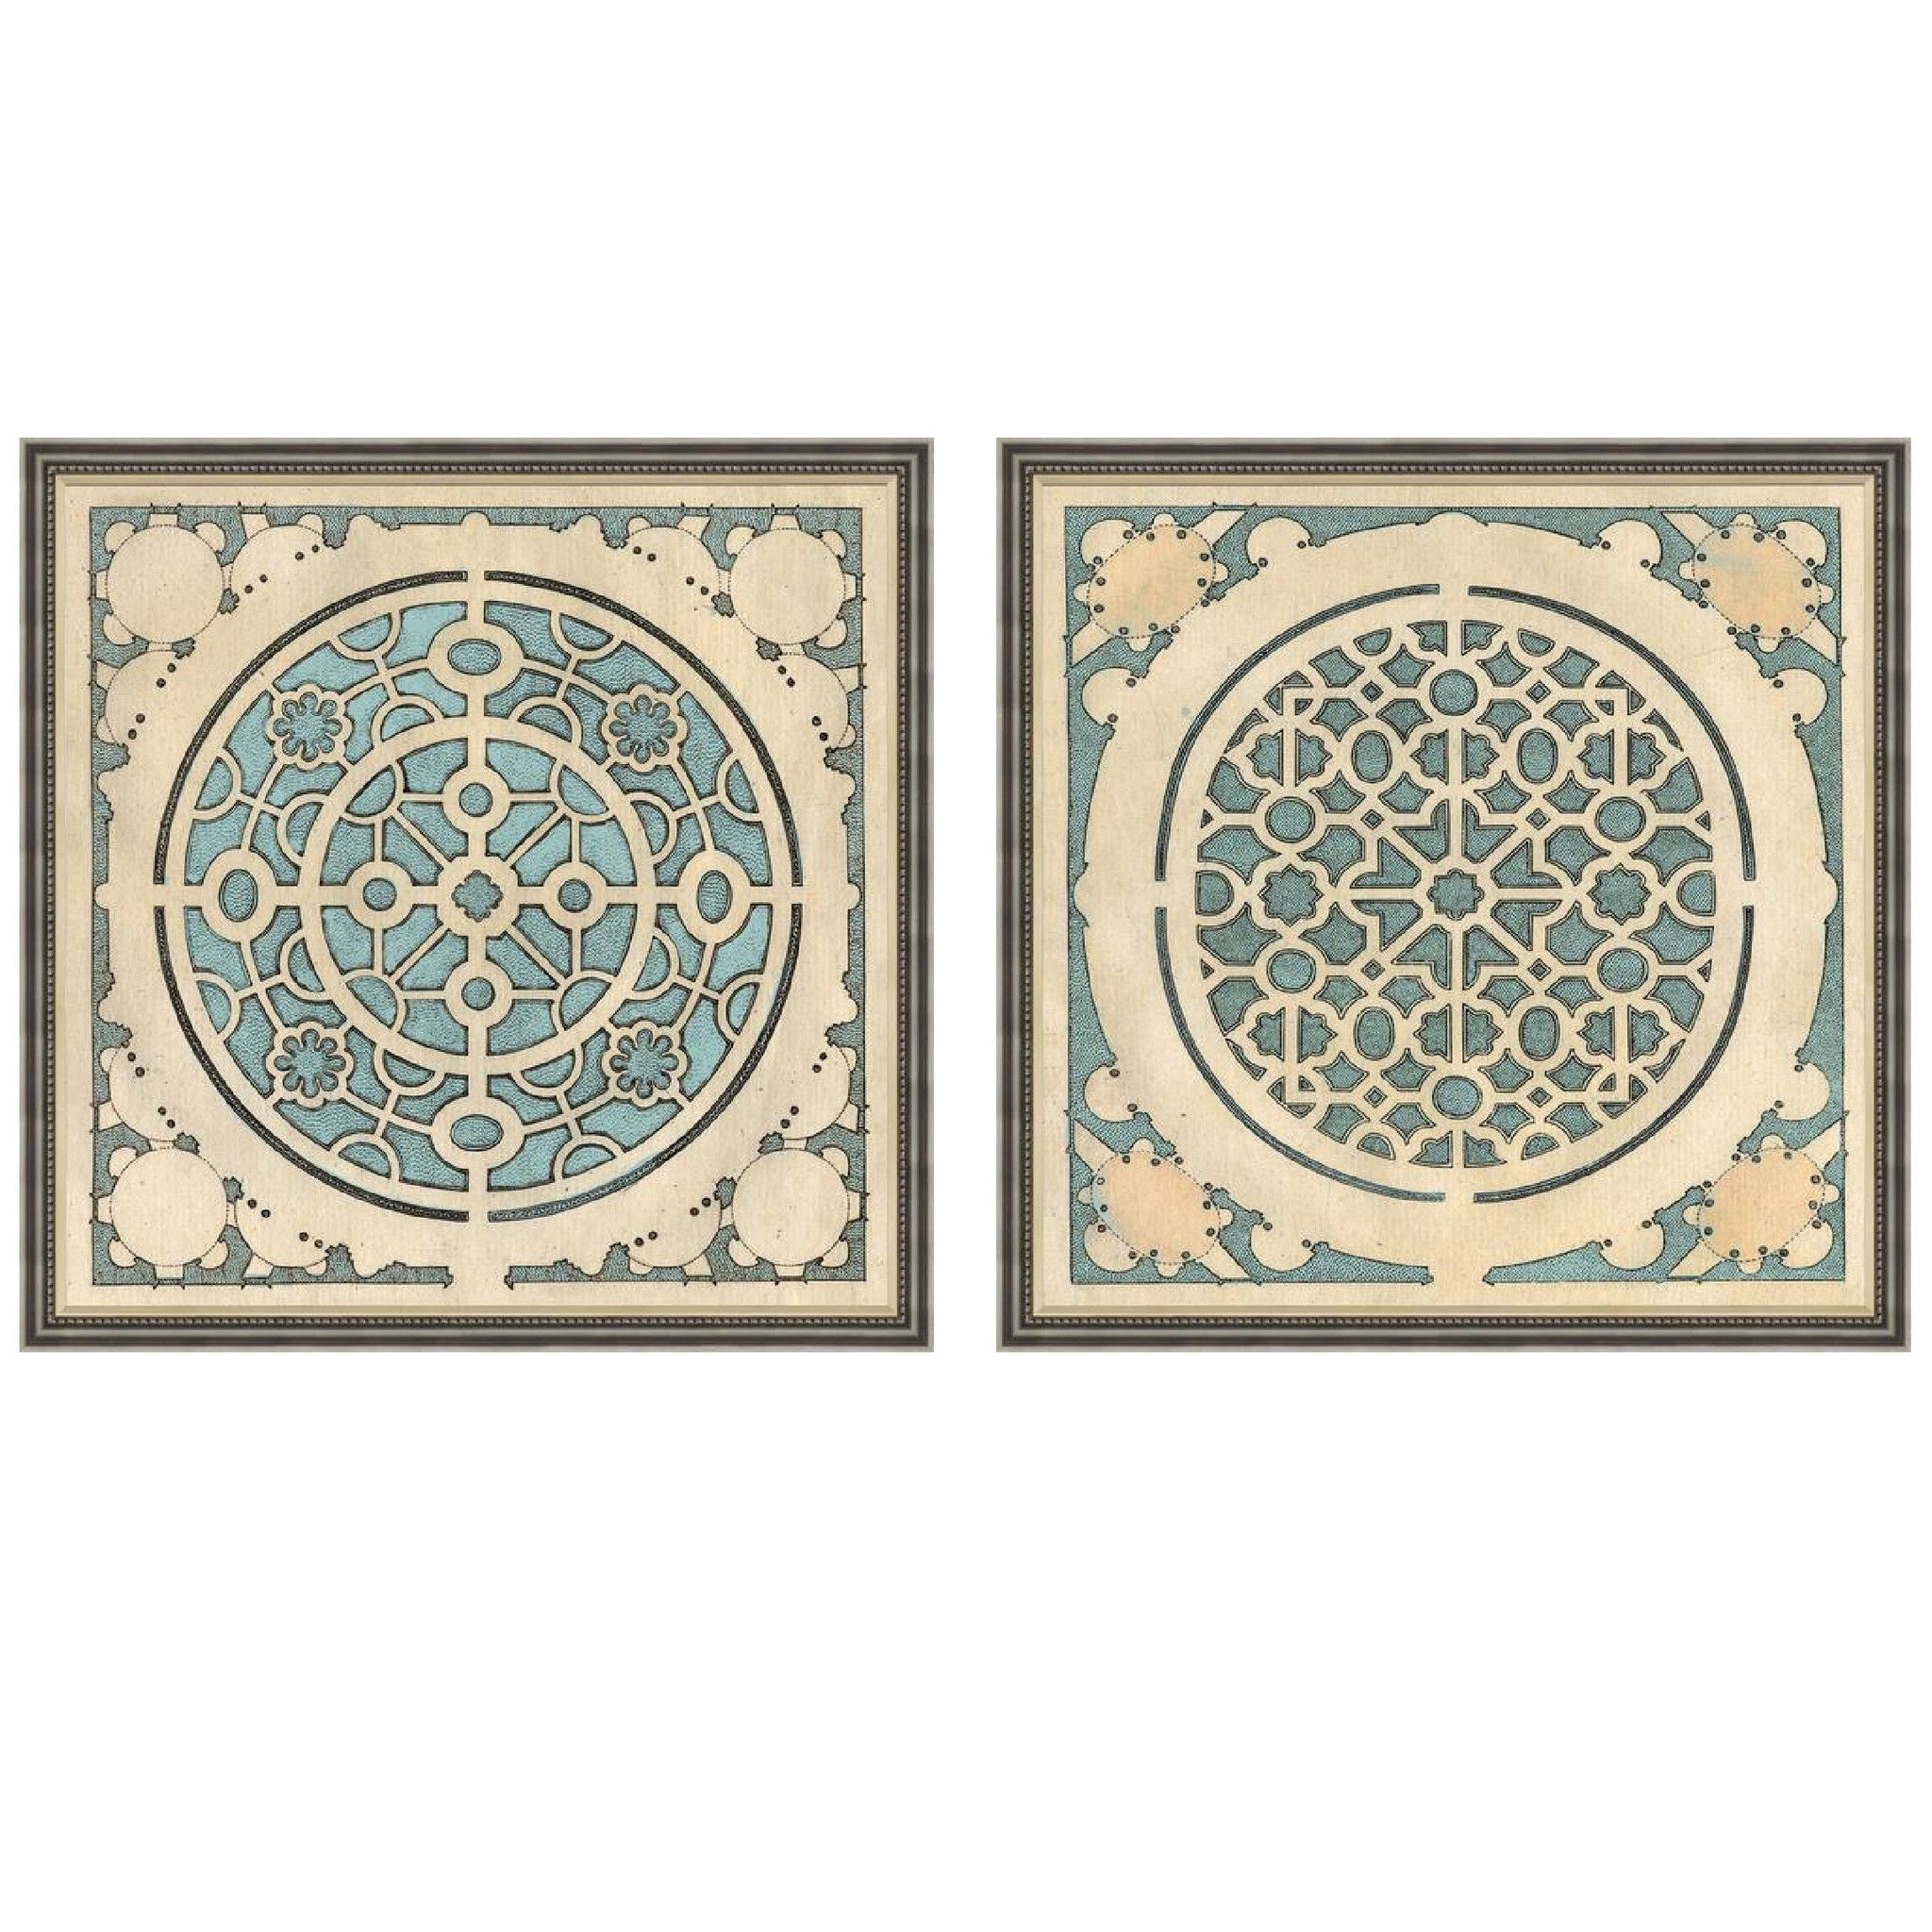 Large blue garden plans wall art set of garden planning ideas